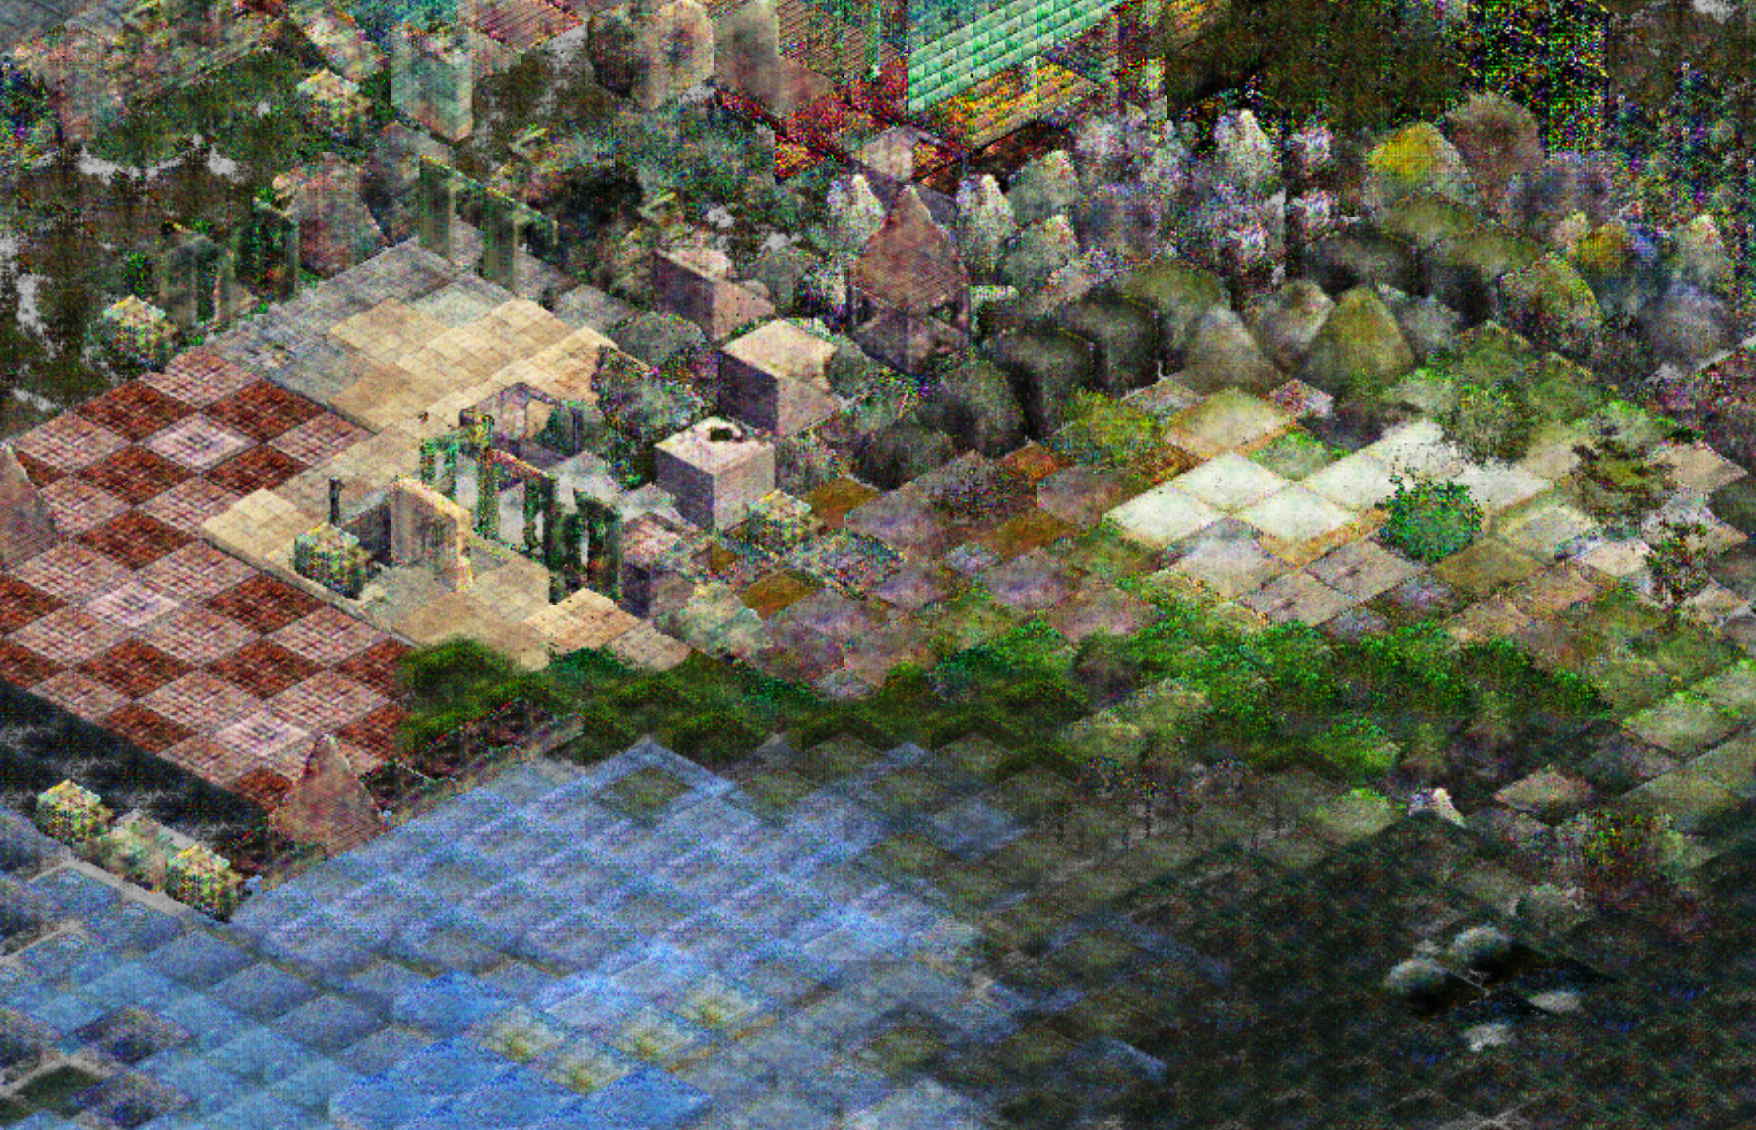 Mushy - an asset pack of neural network generated isometric